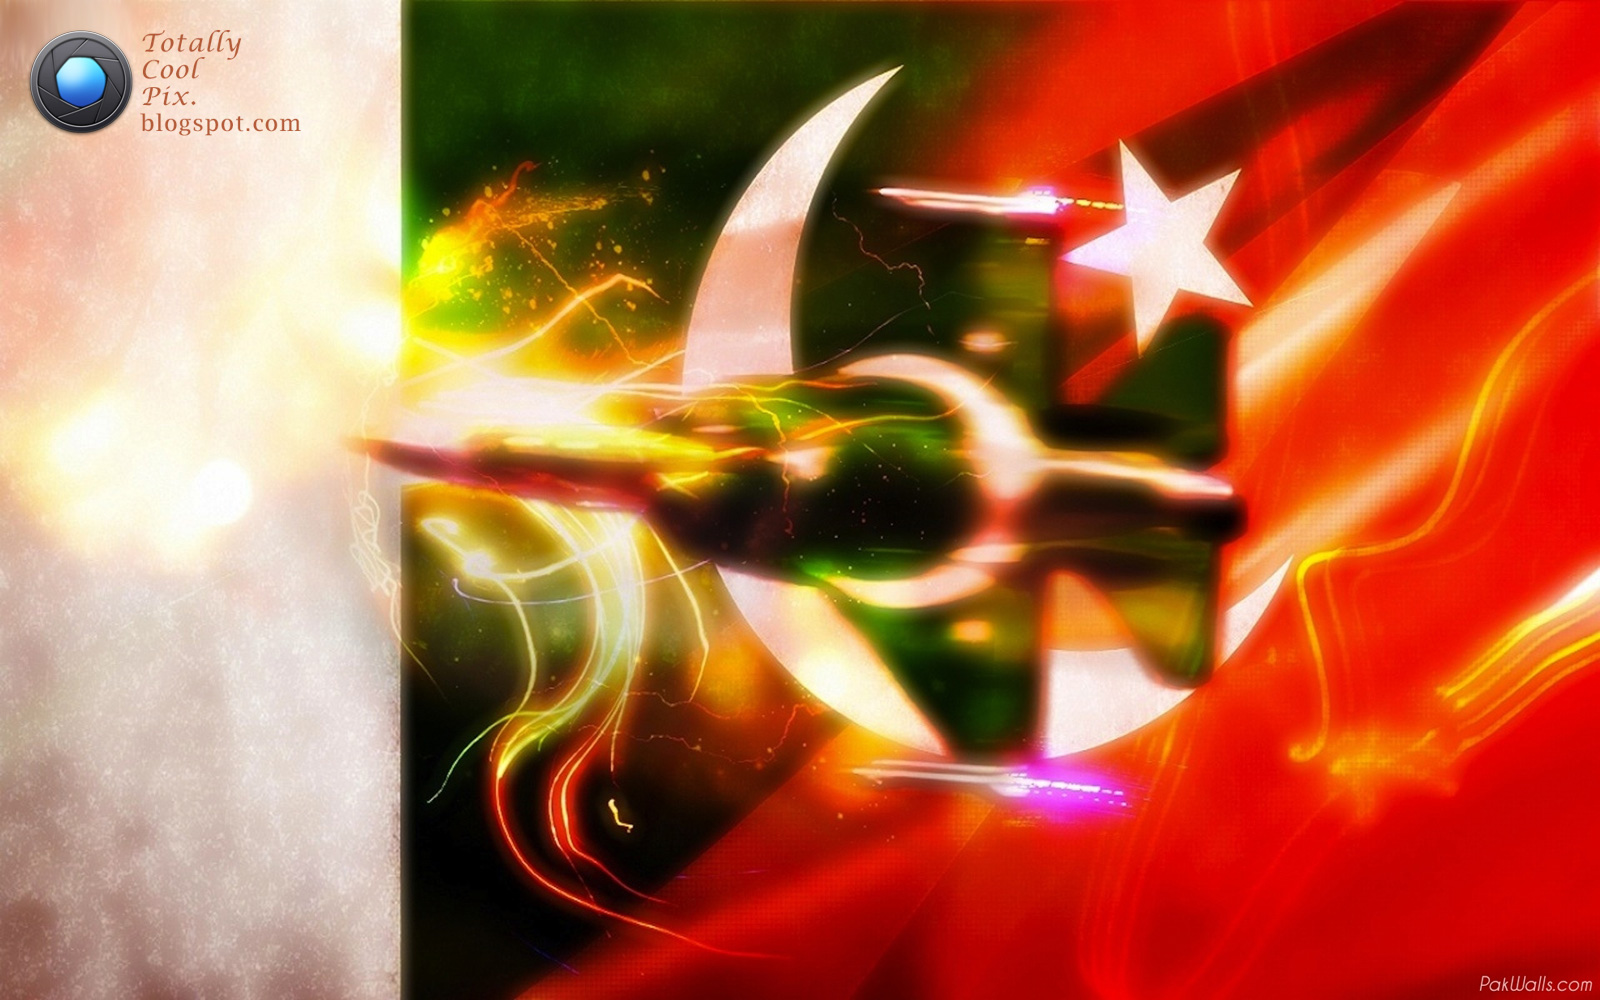 http://2.bp.blogspot.com/-1KgNg68nYB8/UB3iahPpIVI/AAAAAAAACQw/2S8QRe6-_TE/s1600/14-August-independence-day-of-Pakistan-HD-wallpaper-and-greeting-card-23-pakistan-fighter-plane-flying-on-pakistan.jpg